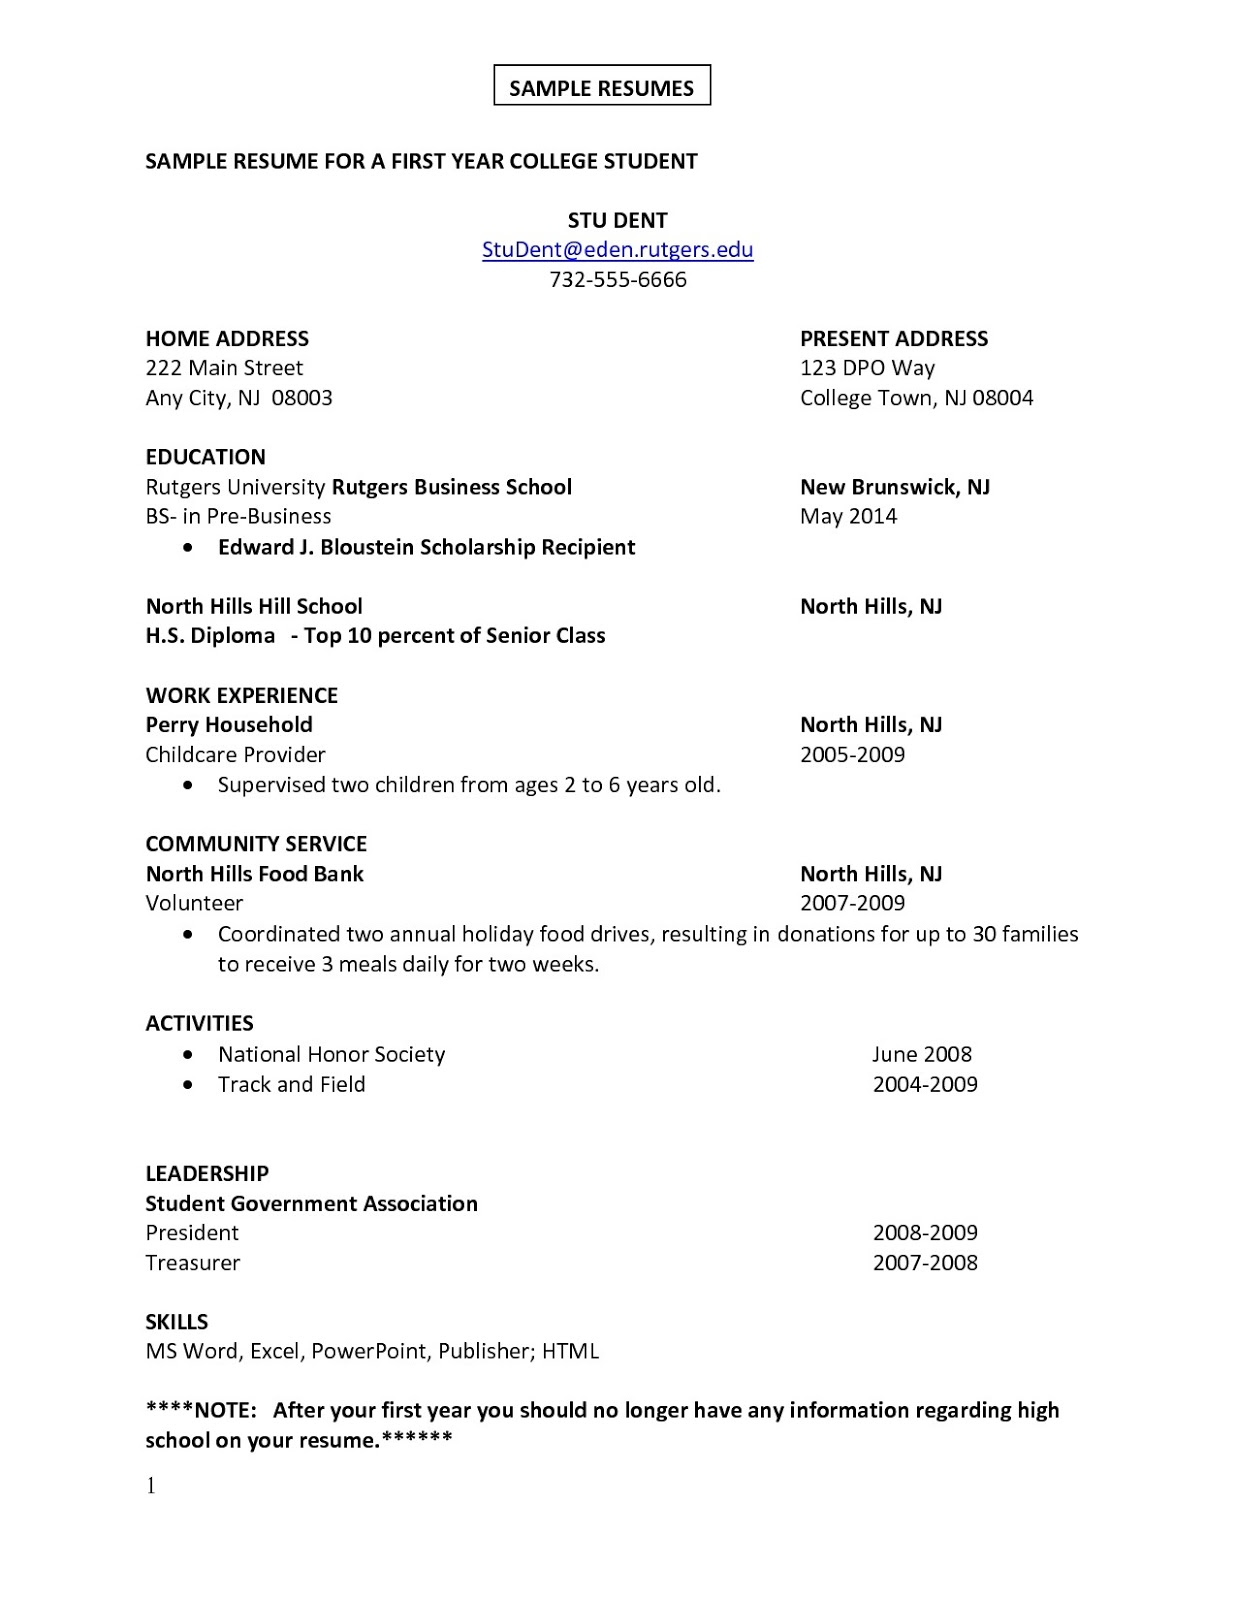 Australian Format Resume  australian resume templates resume     Power Resumes layout resume australia download     free resume templates for